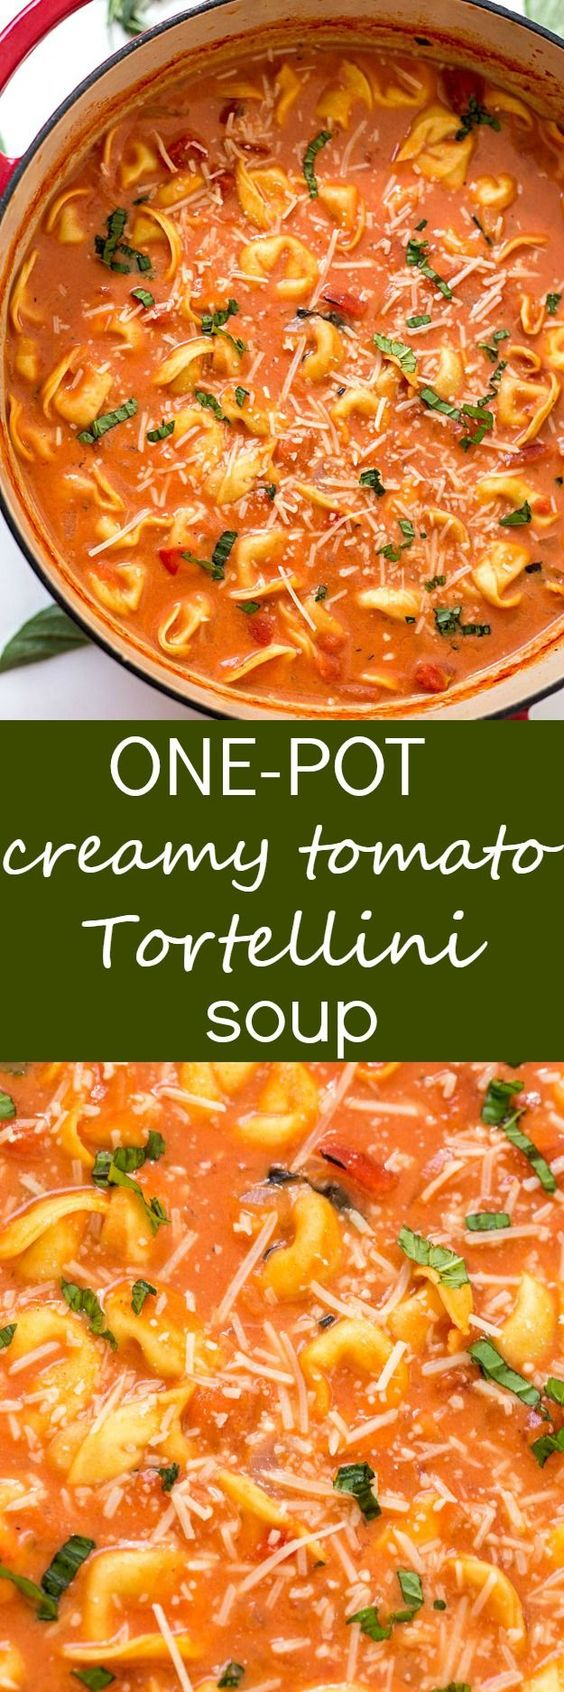 The best homemade soups recipes easy quick and yummy comfort food quick and yummy comfort food lunch and dinner family favorites meals ideas one pot creamy tomato tortellini soup recipe gal on a mission the best forumfinder Gallery